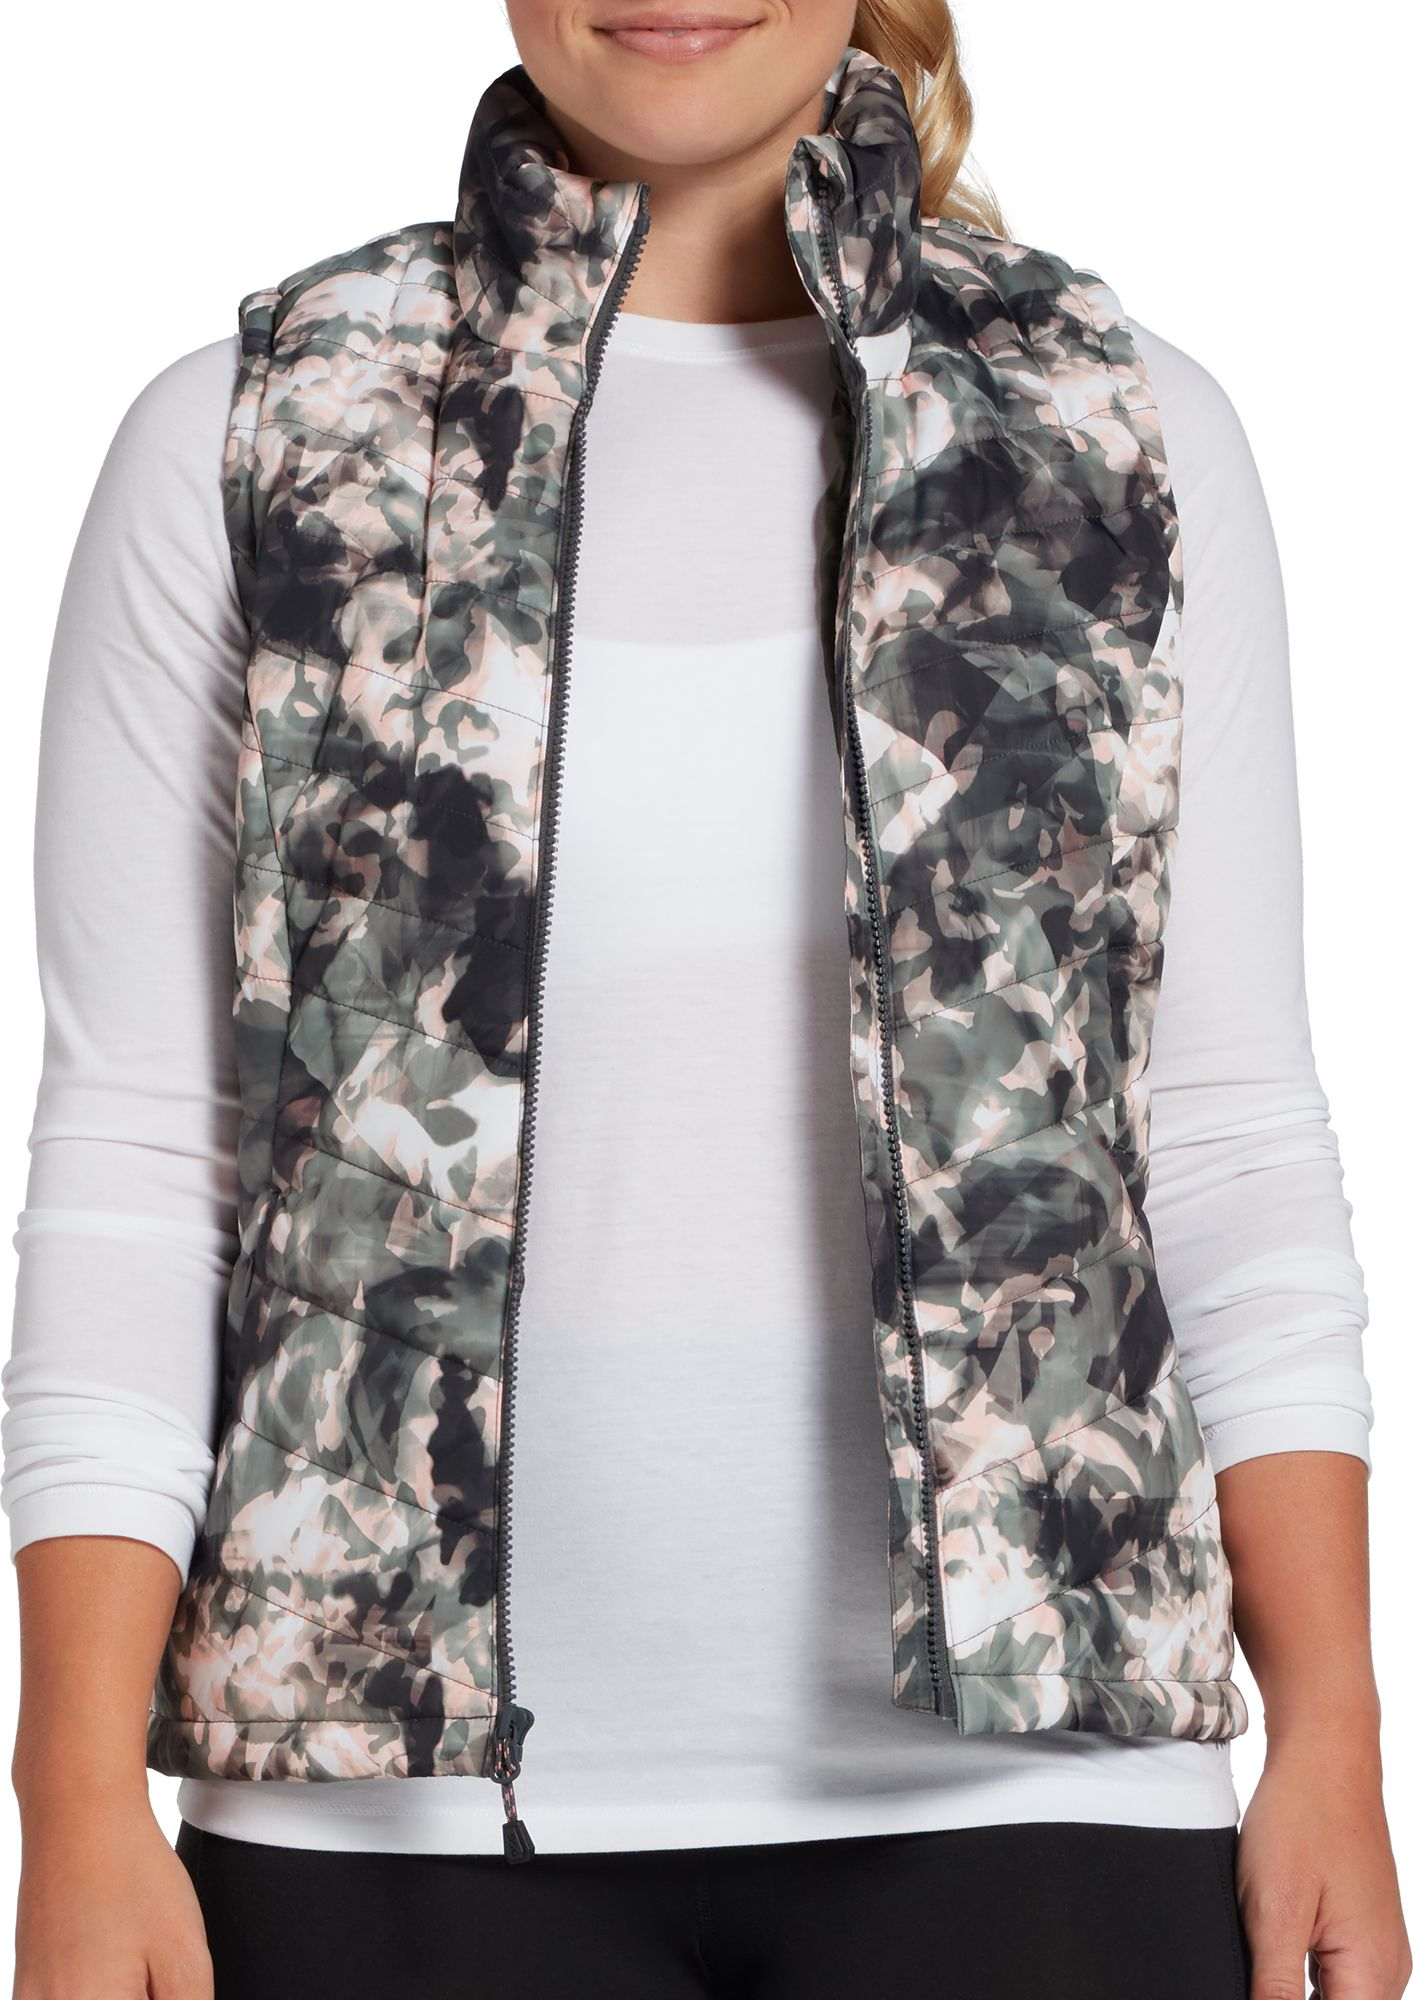 DSG Women's Printed Insulated Vest, Size: Medium, Elemental Camo thumbnail